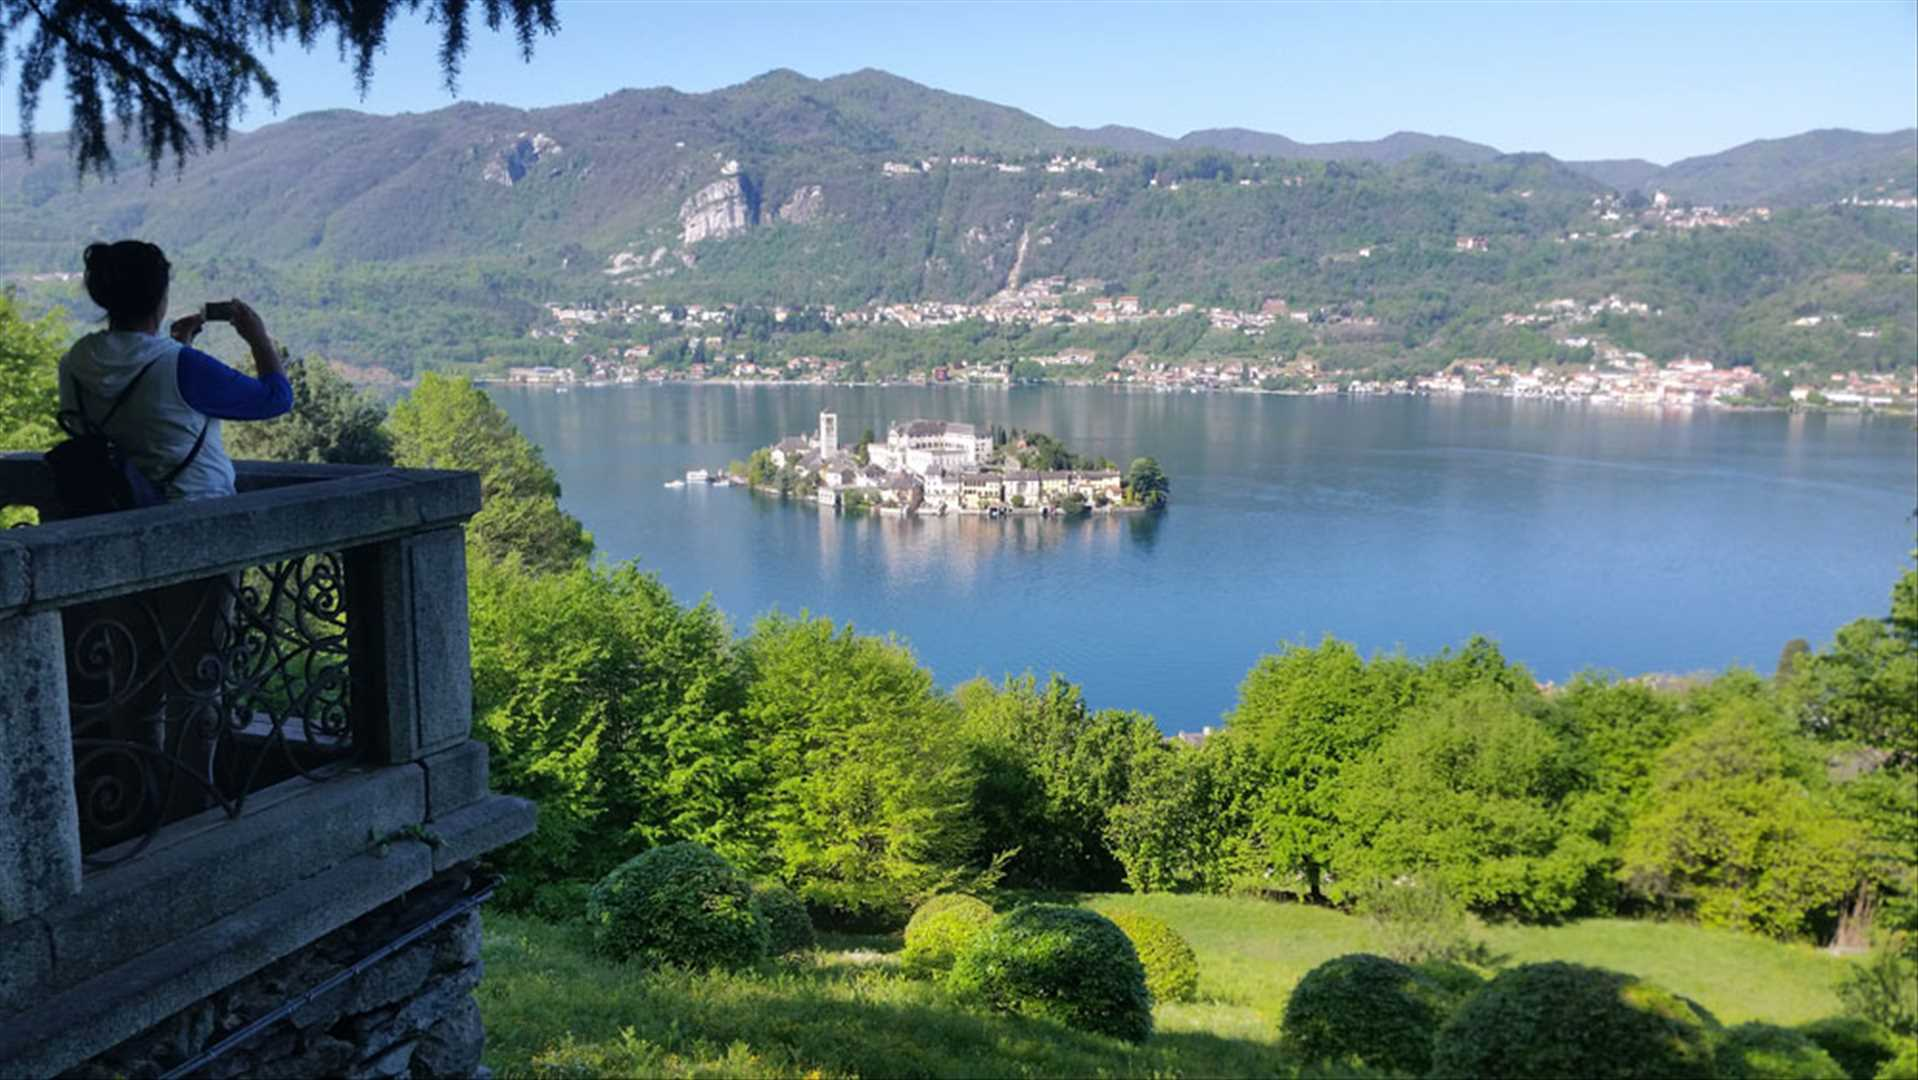 Billedresultat for lago d'orta